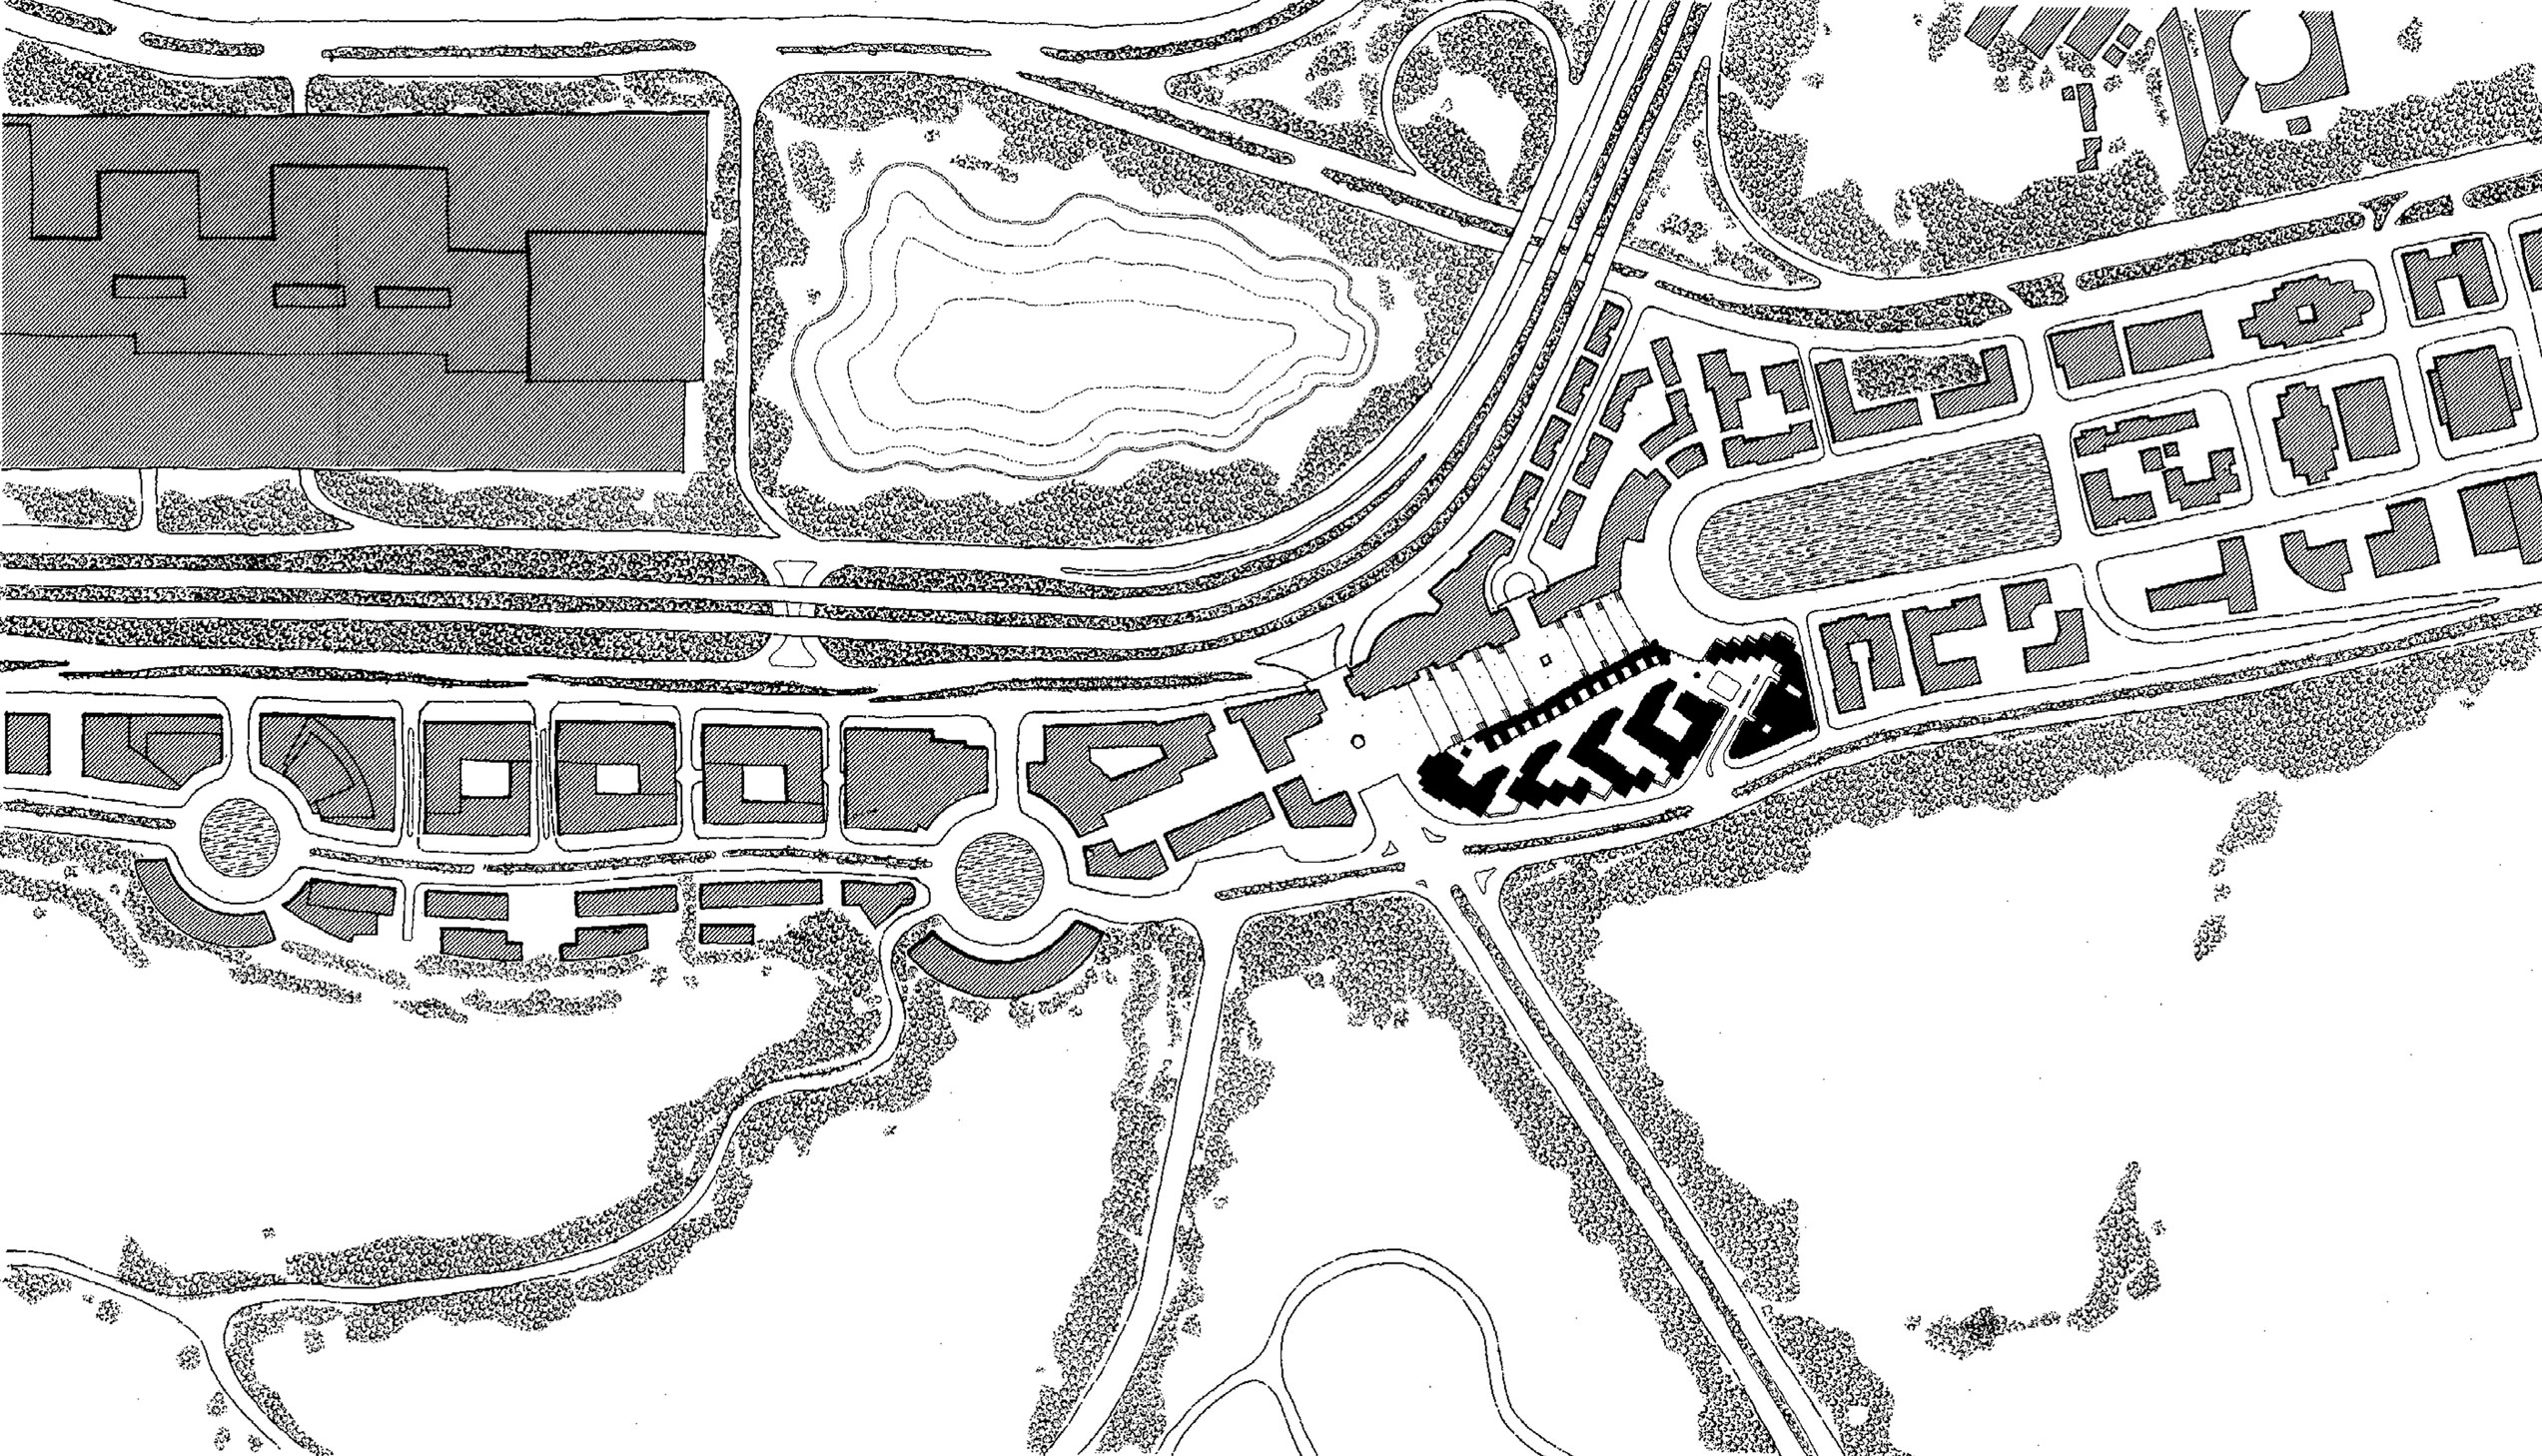 Santa Fe Master Plan - Plan of Housing,